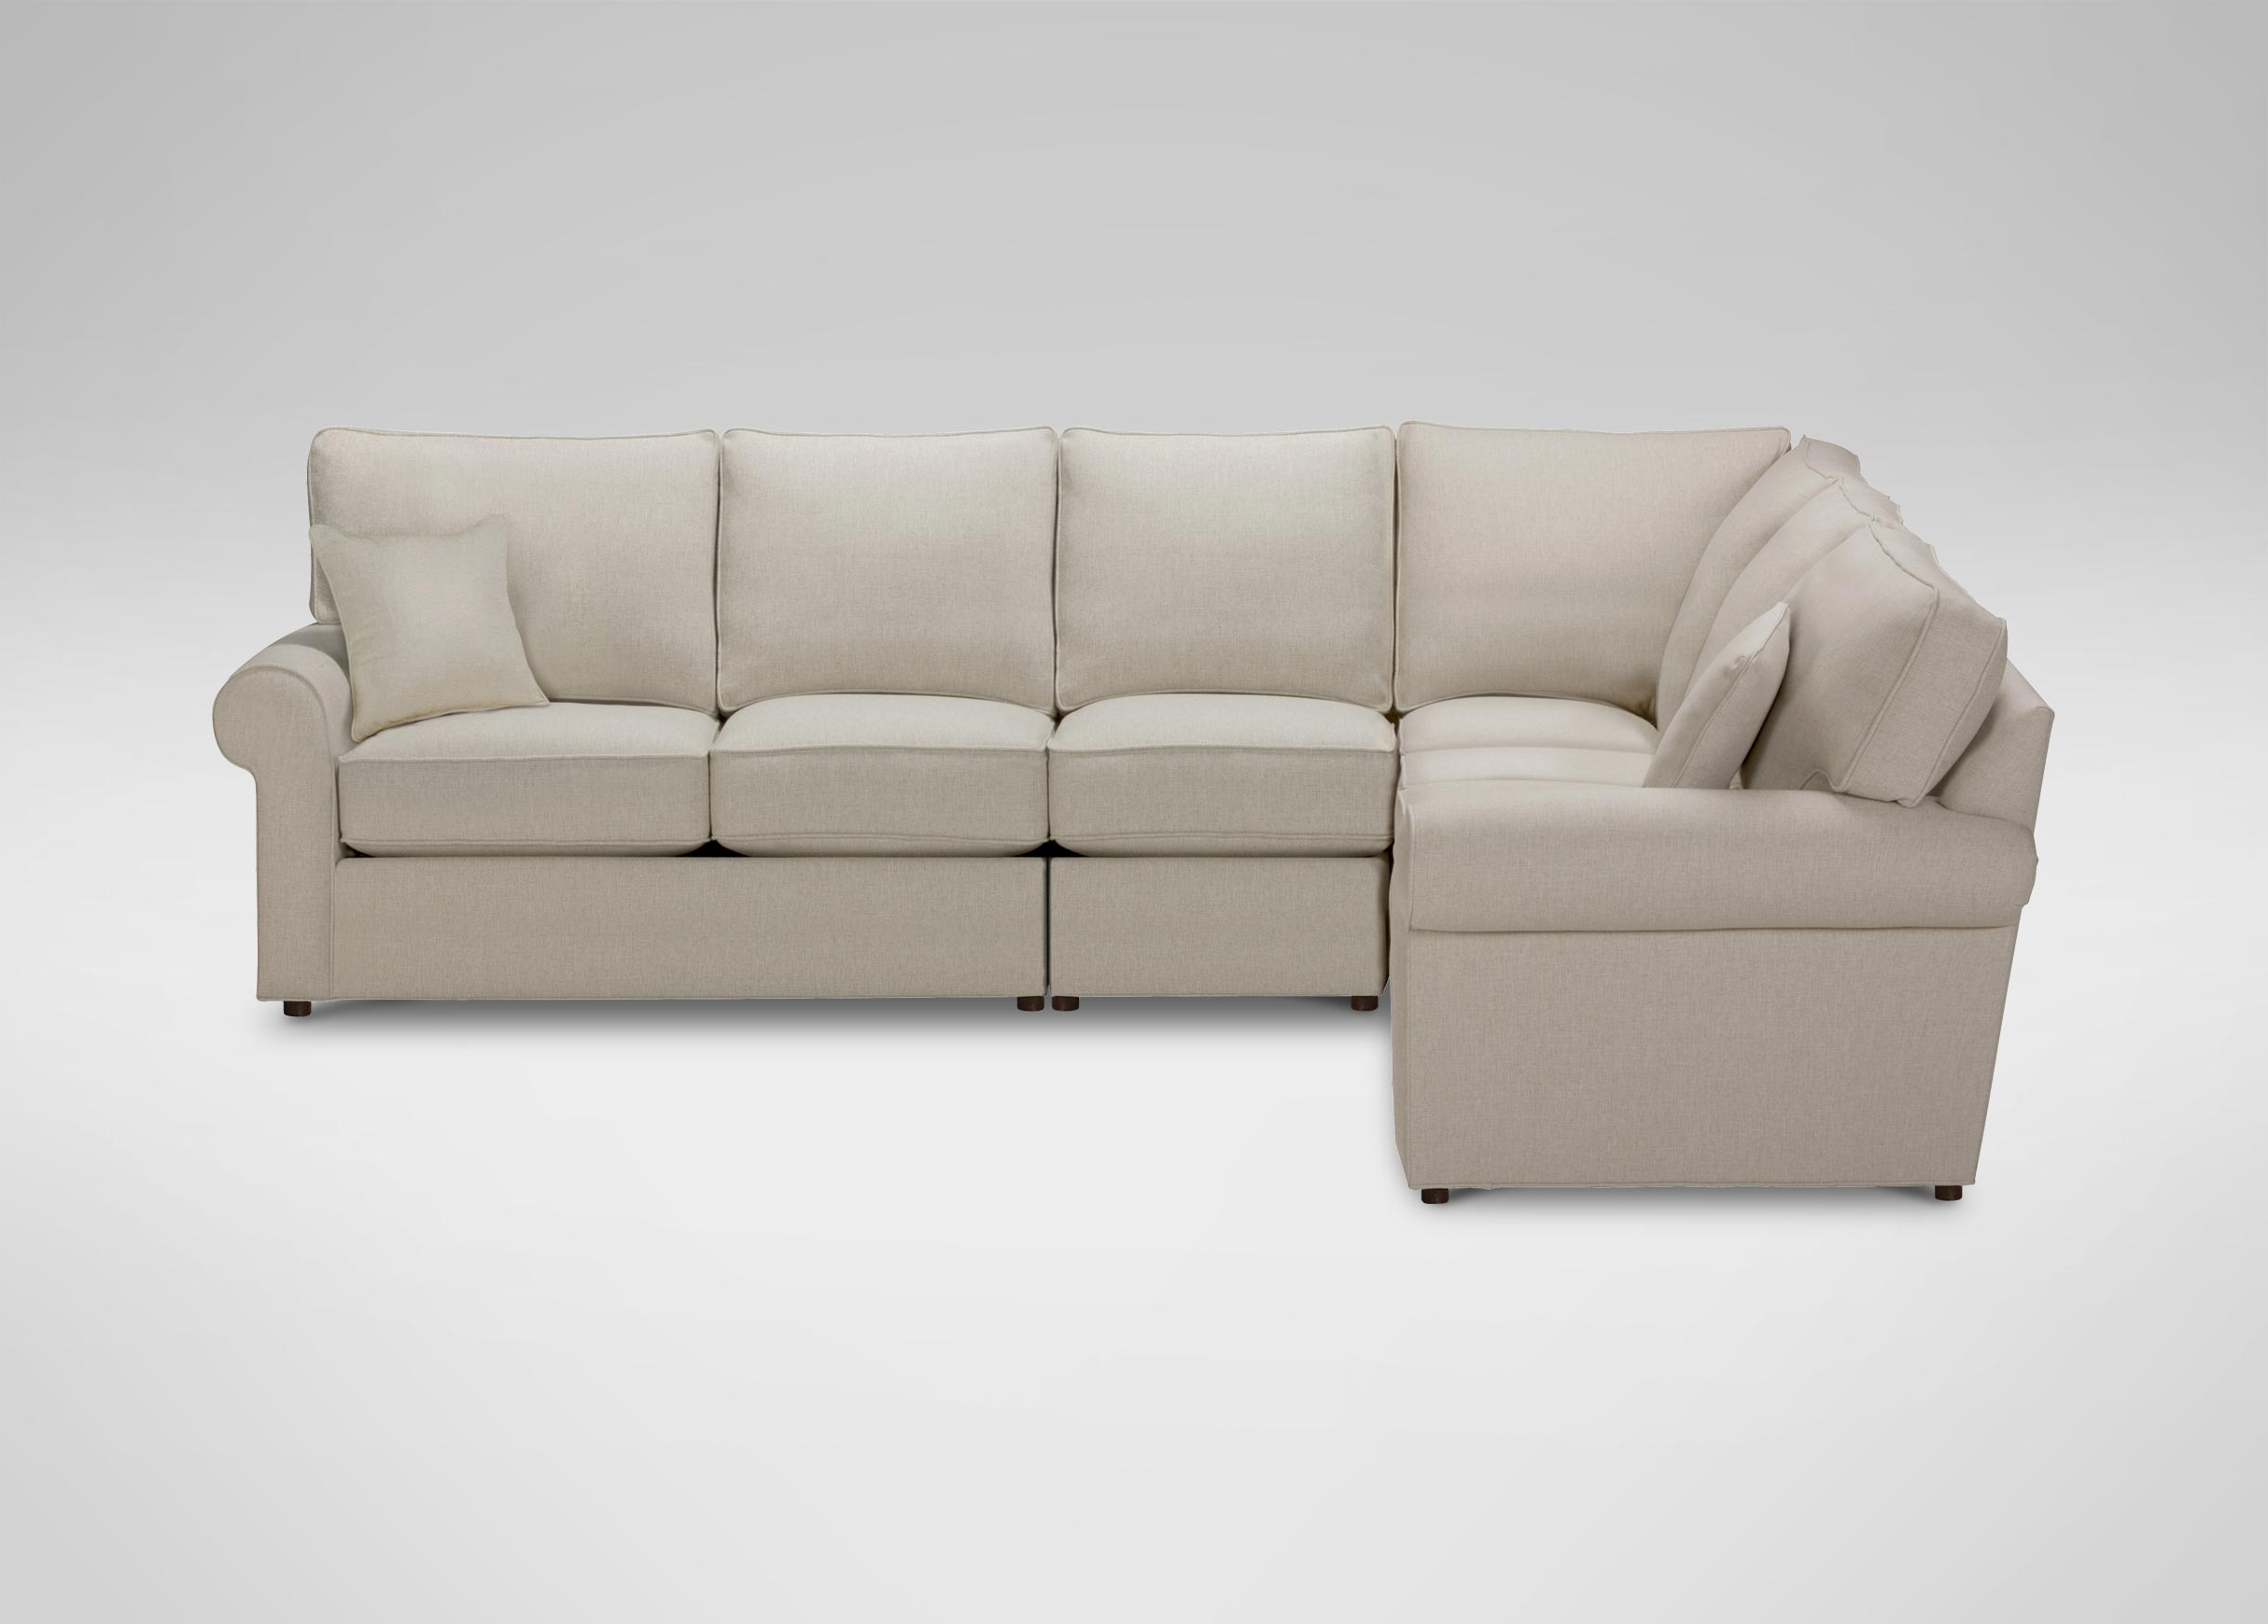 Ethan Allen For Sectional Sofas At Ethan Allen (View 5 of 20)